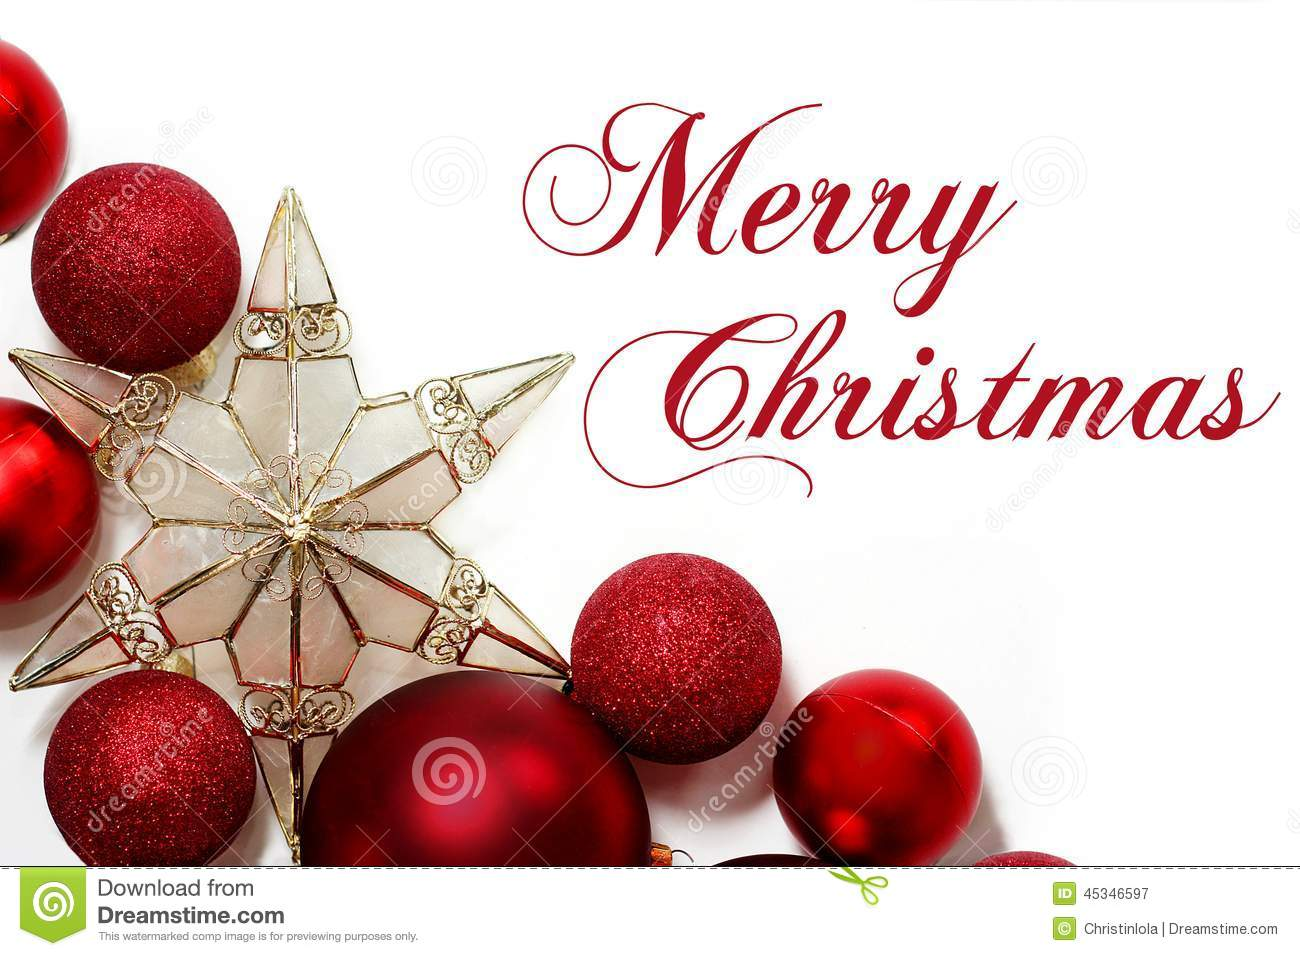 Merry Christmas Sign With Ornaments Border Stock Image - Image of ...